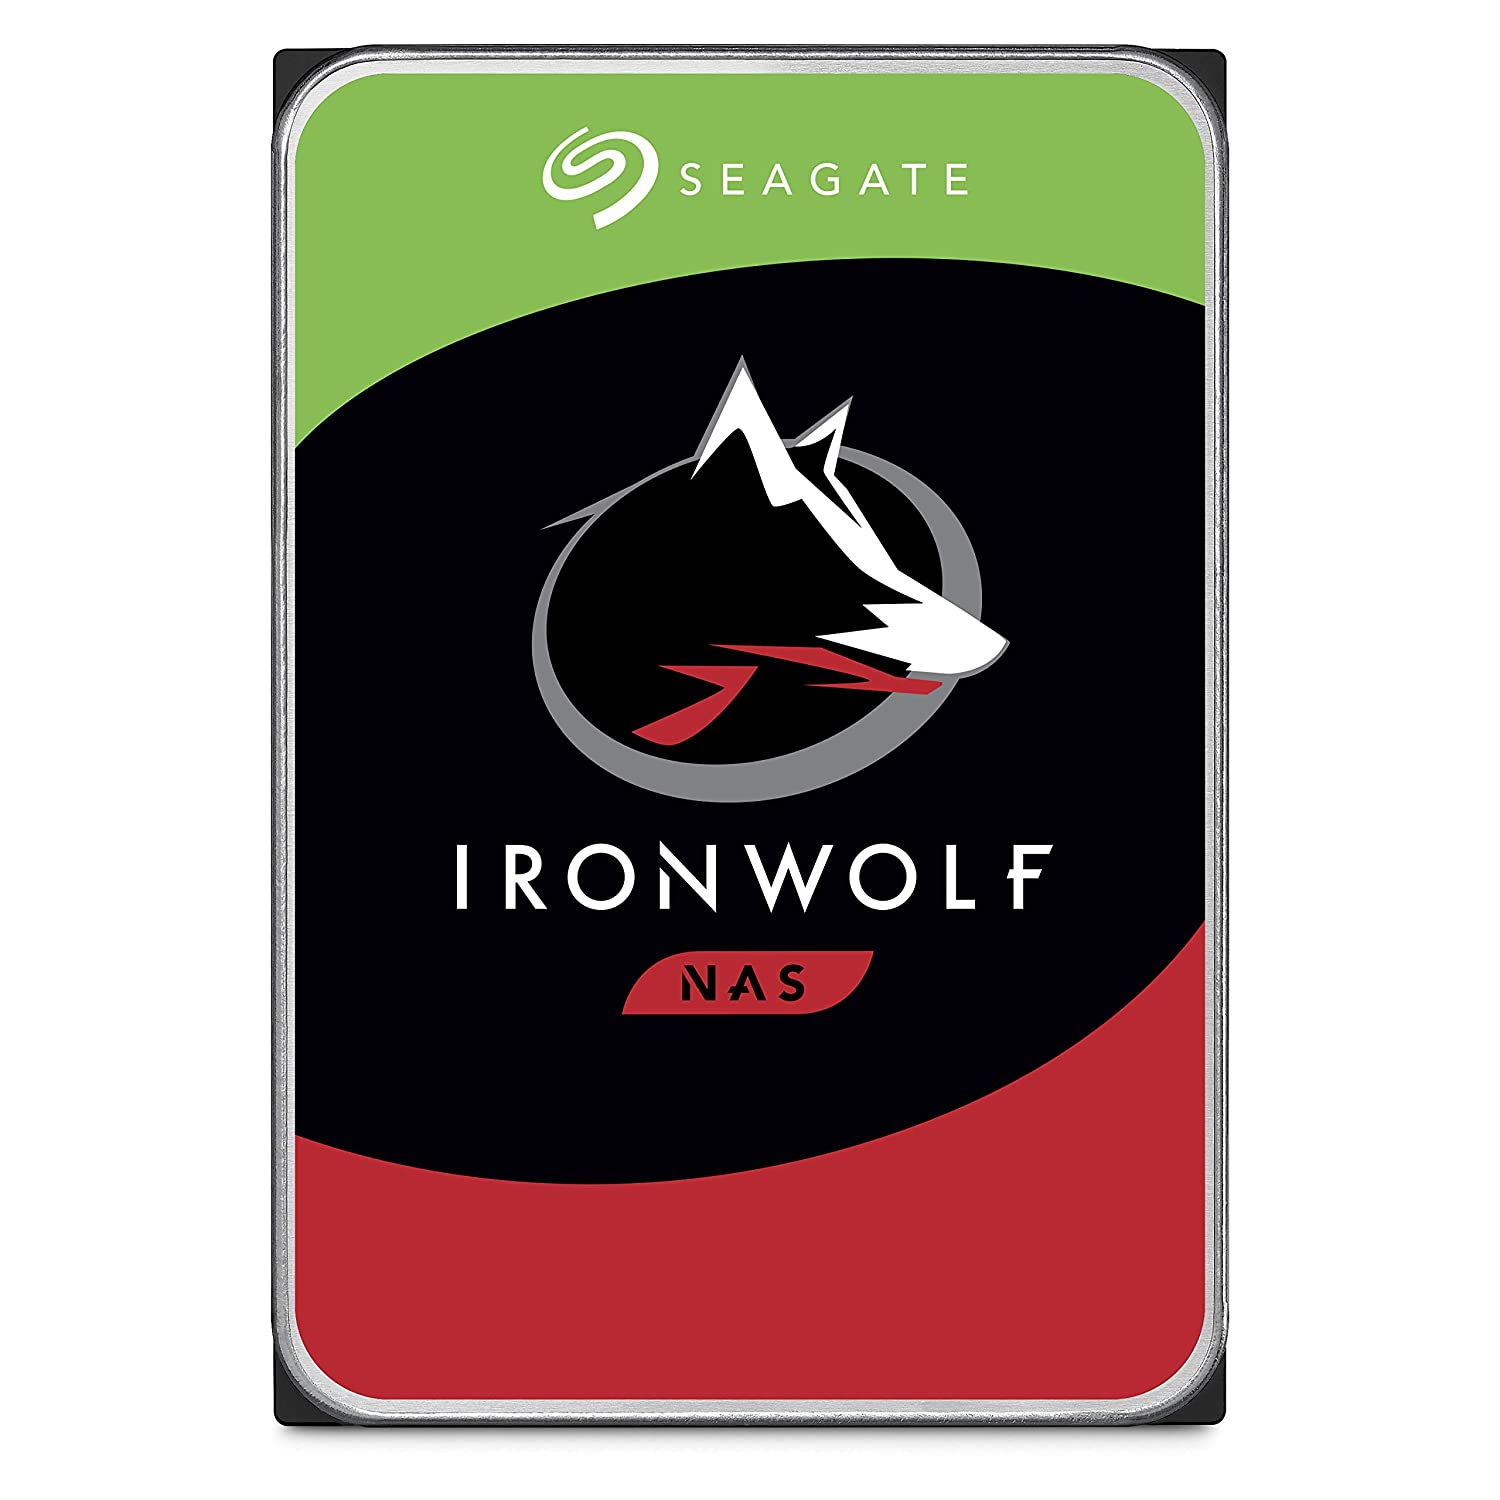 Seagate IronWolf 2TB NAS Internal Hard Drive HDD – 3.5 Inch SATA 6Gb/s 5900 RPM 64MB Cache for RAID Network Attached Storage (ST2000VN004)